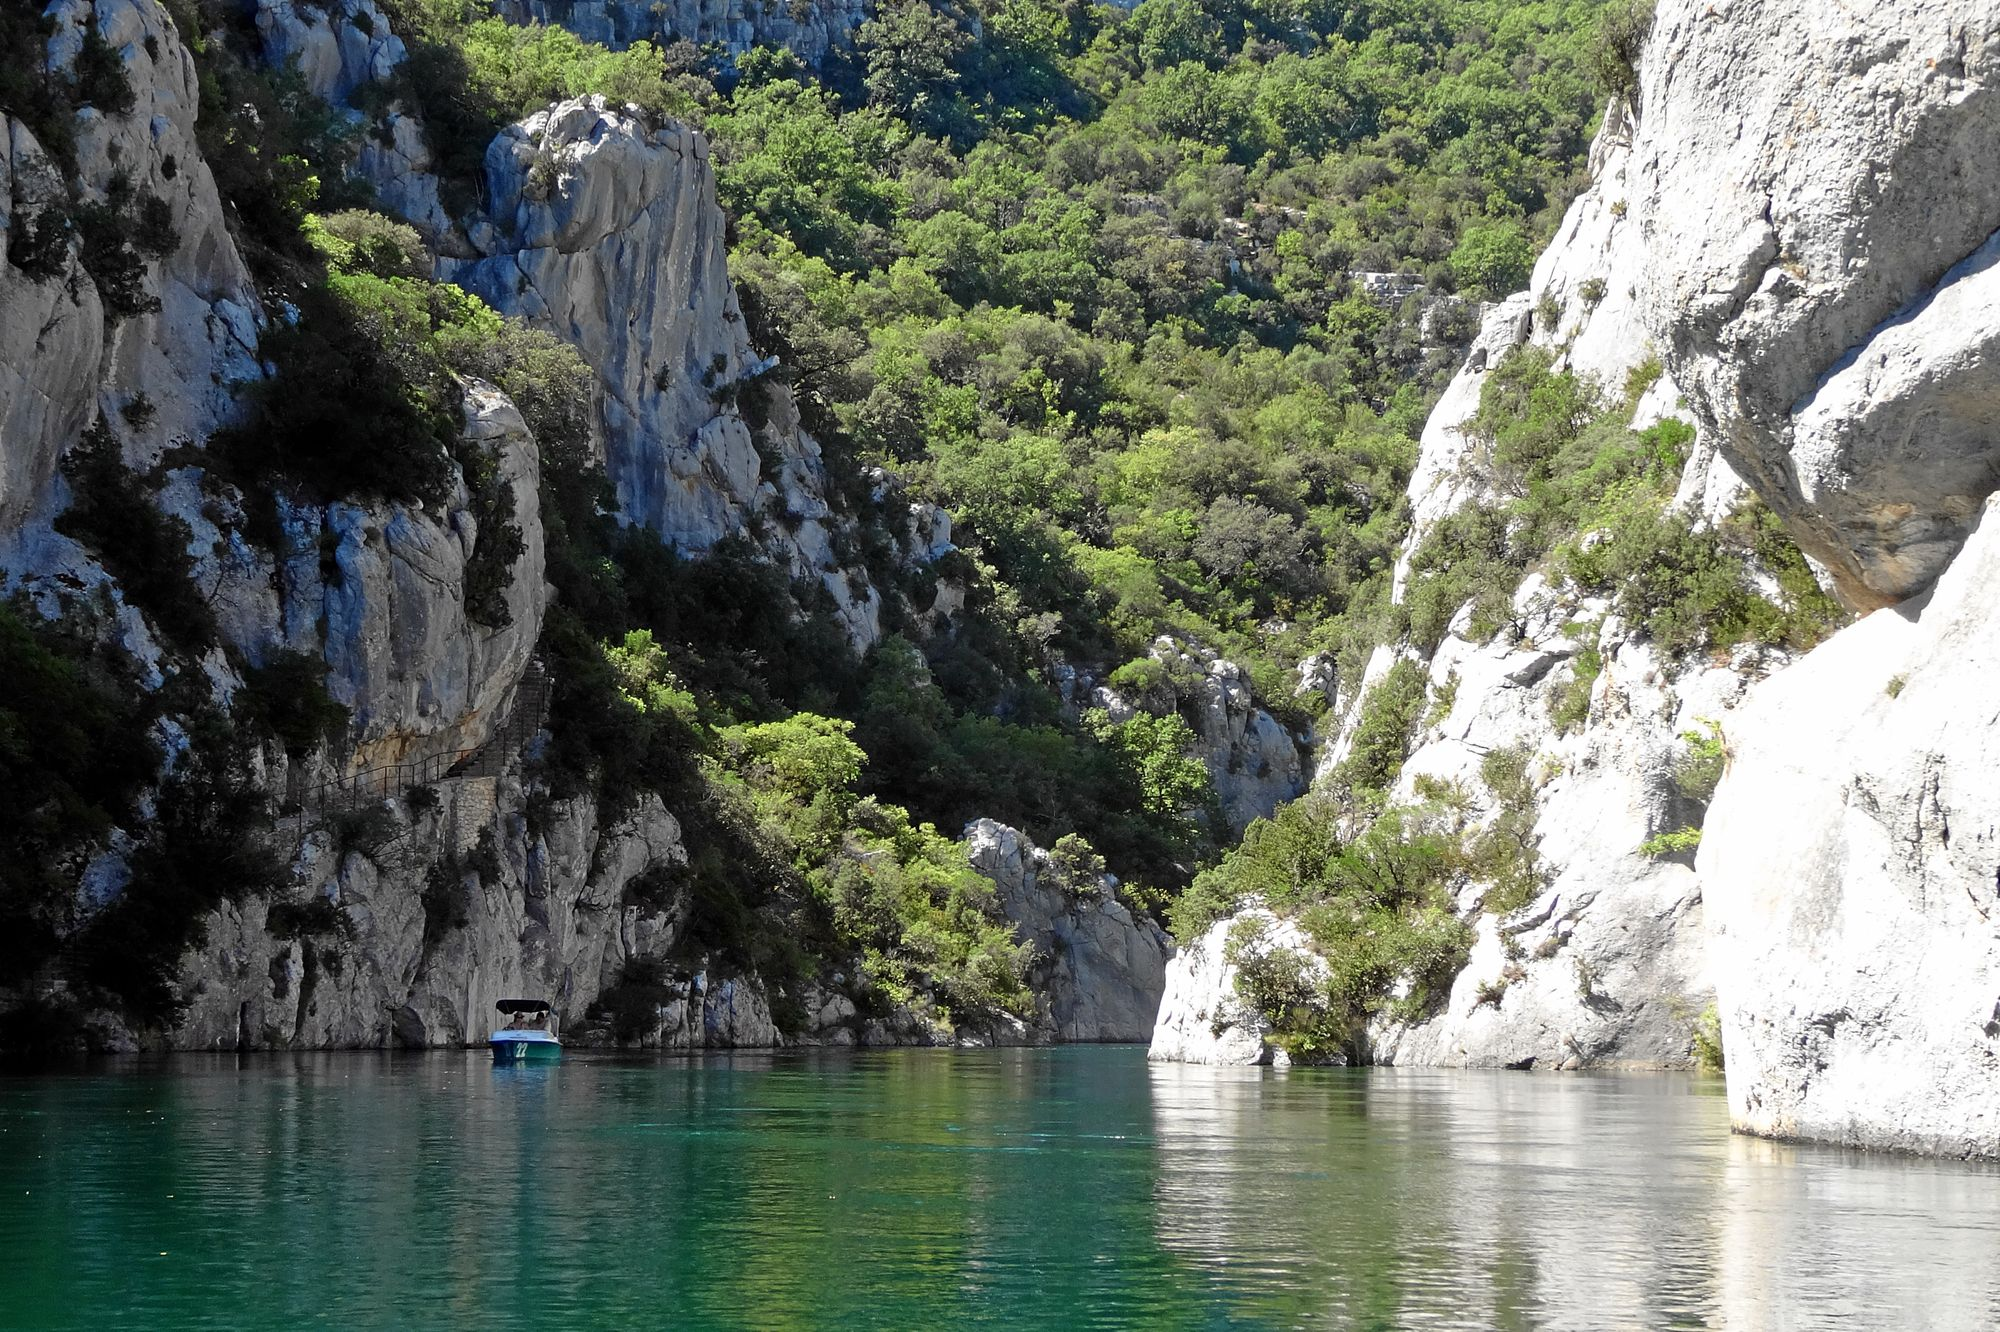 The Verdon Regional Natural Park